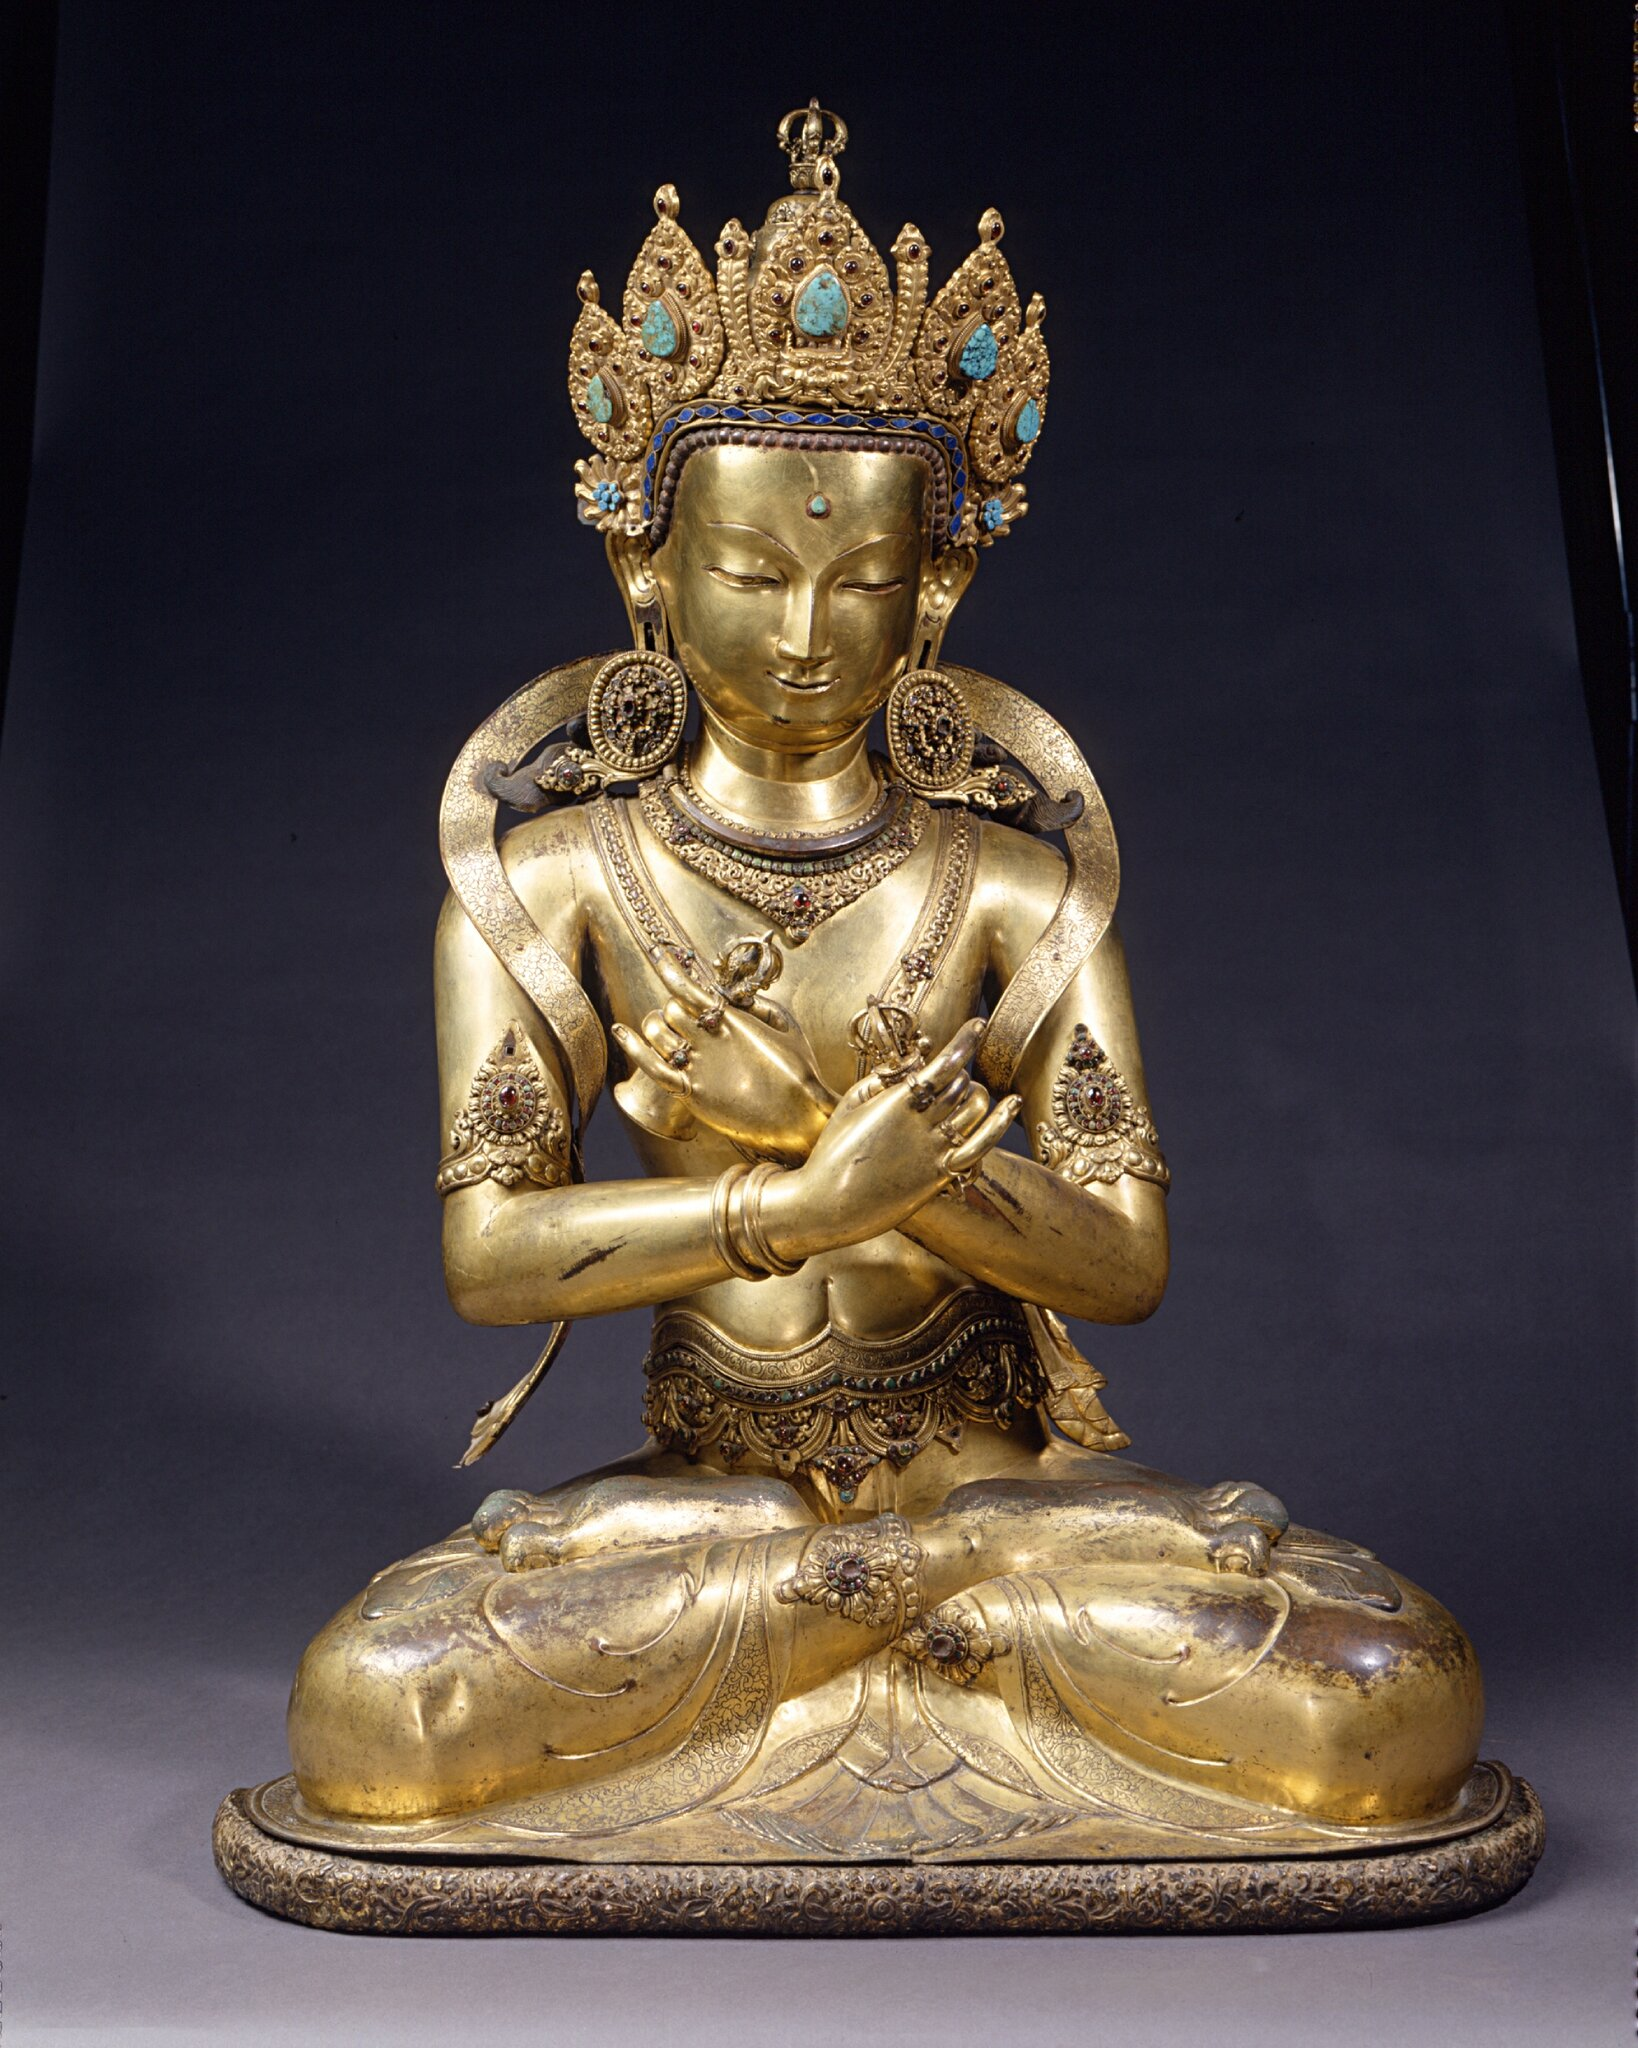 Very rare sculpture of Buddha on sale by ROSSI & ROSSI at TEFAF Maastricht 2015